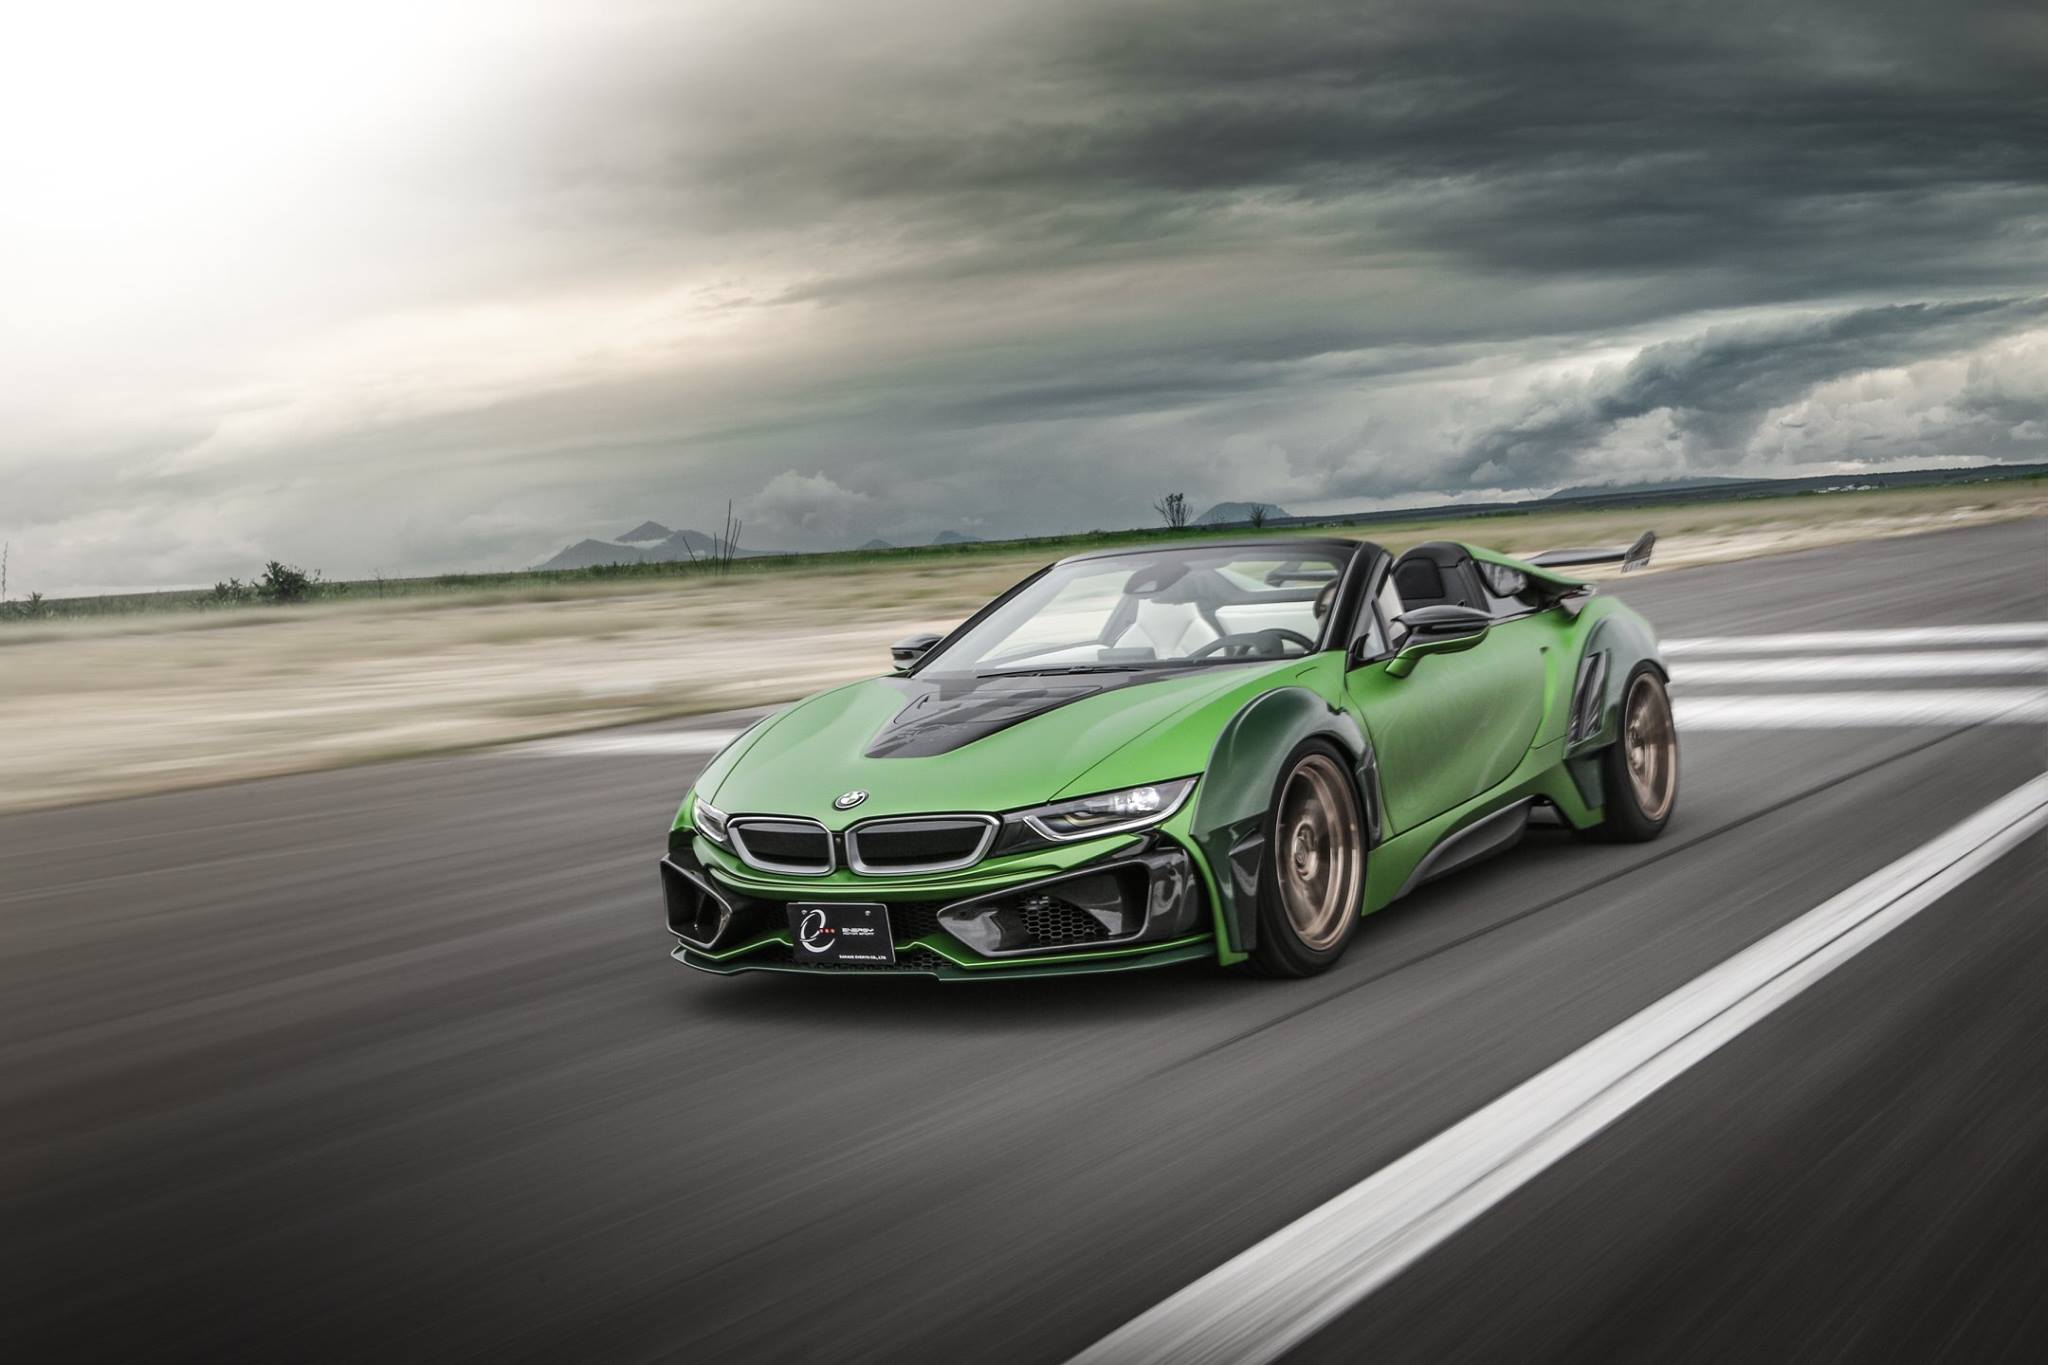 BMW-i8-Roadster-Army-Edition-by-EVE.RYN-1